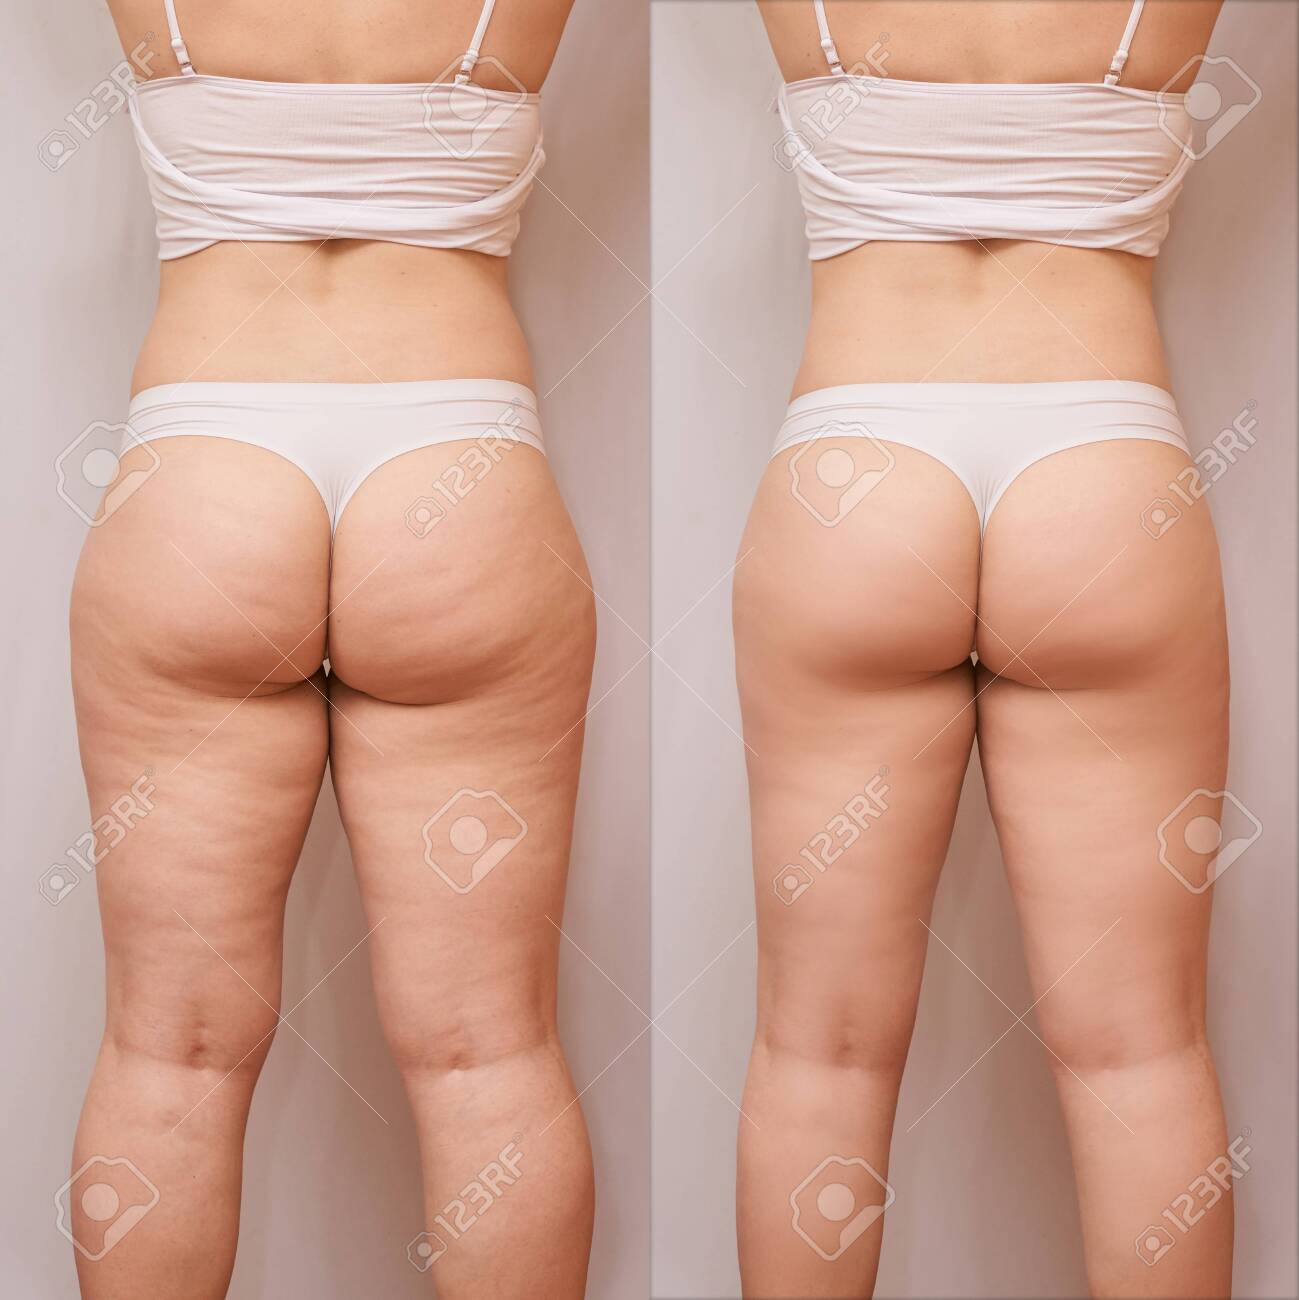 Fat Woman Before And After Back Loss Cellulite Liposuction Stock Photo Picture And Royalty Free Image Image 142414693